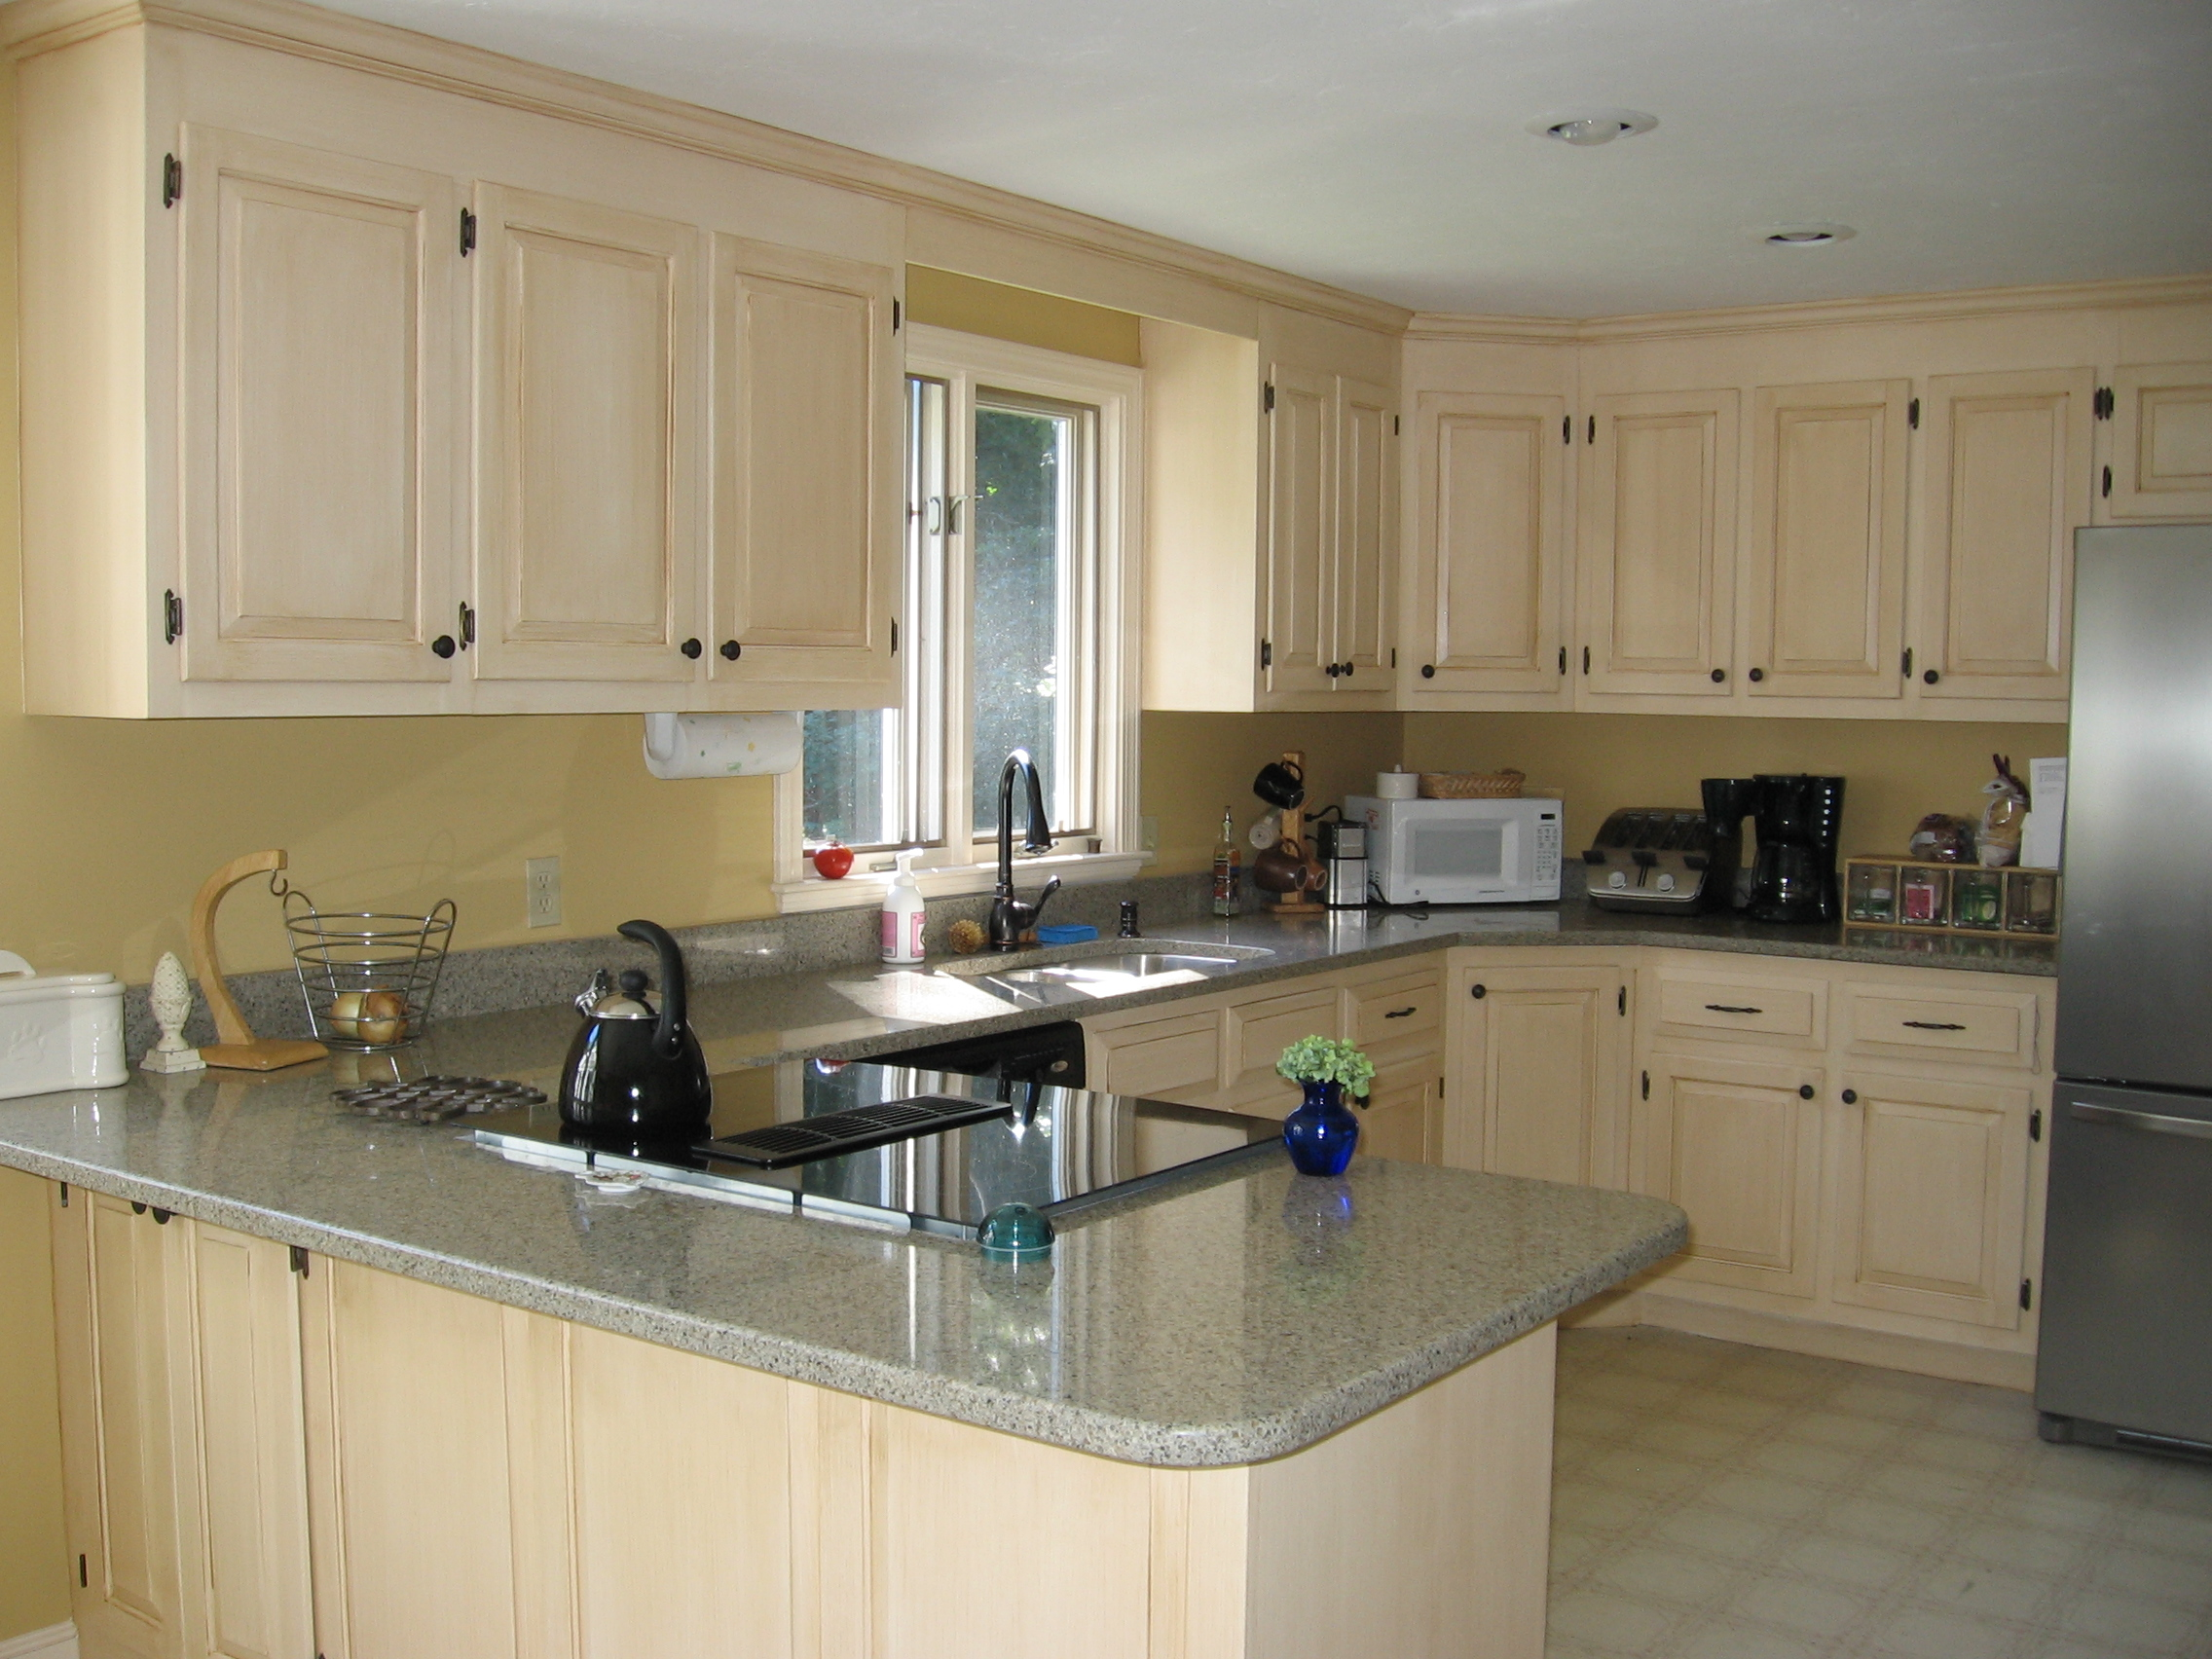 gallery sample pictures of our work - niemi painting & decorating